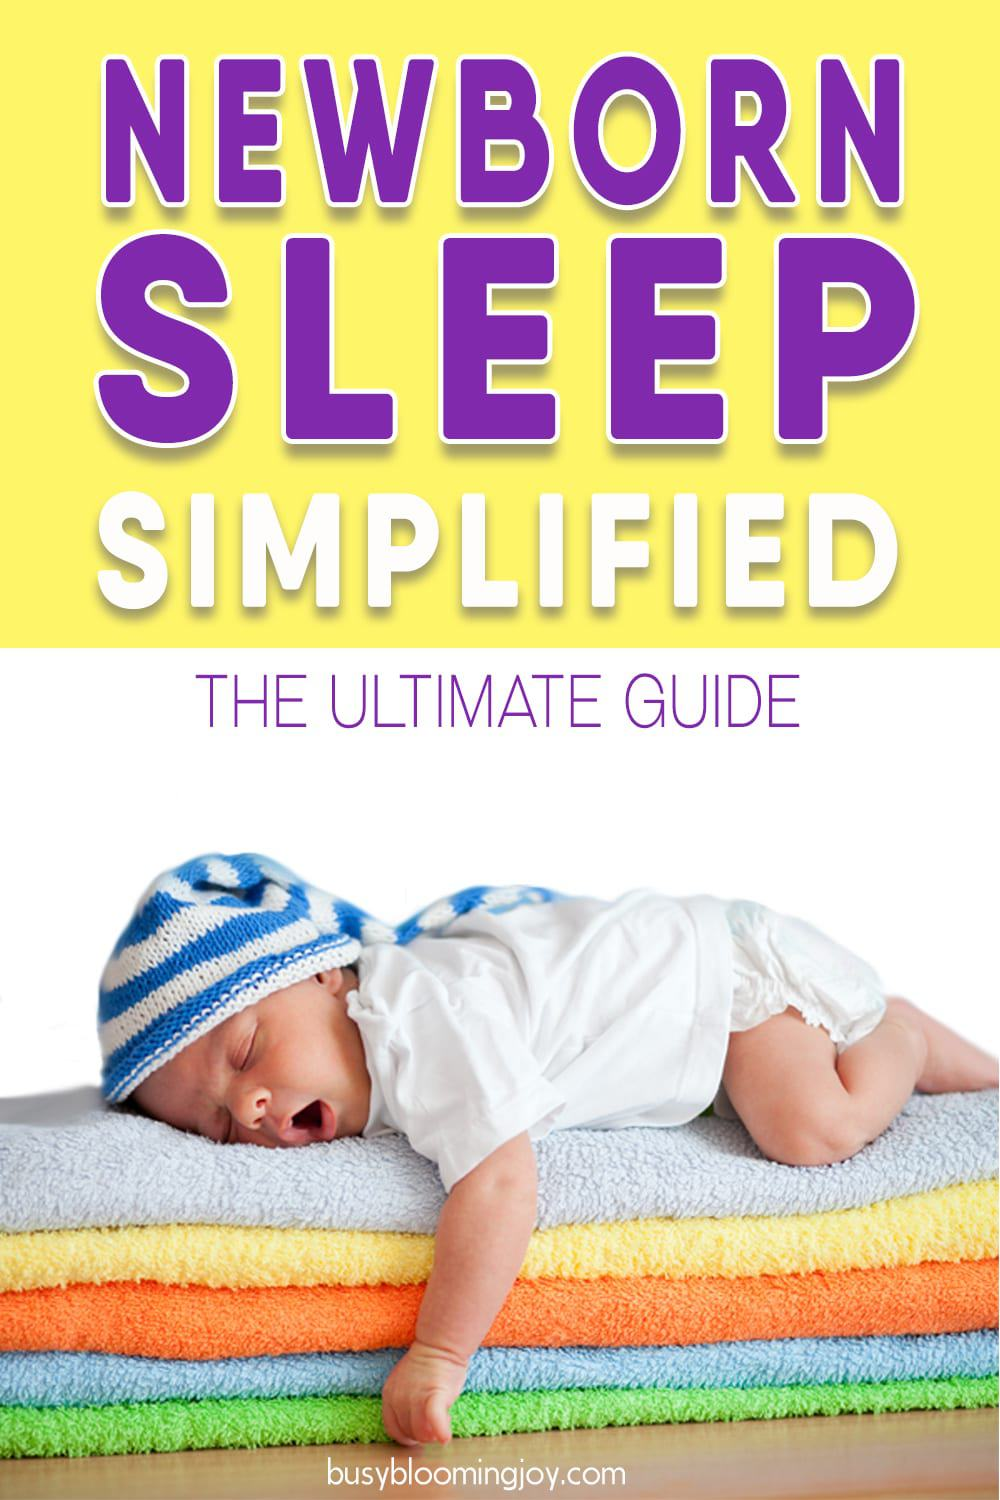 Newborn sleep simplified.  The ULTIMATE guide to get you in the know